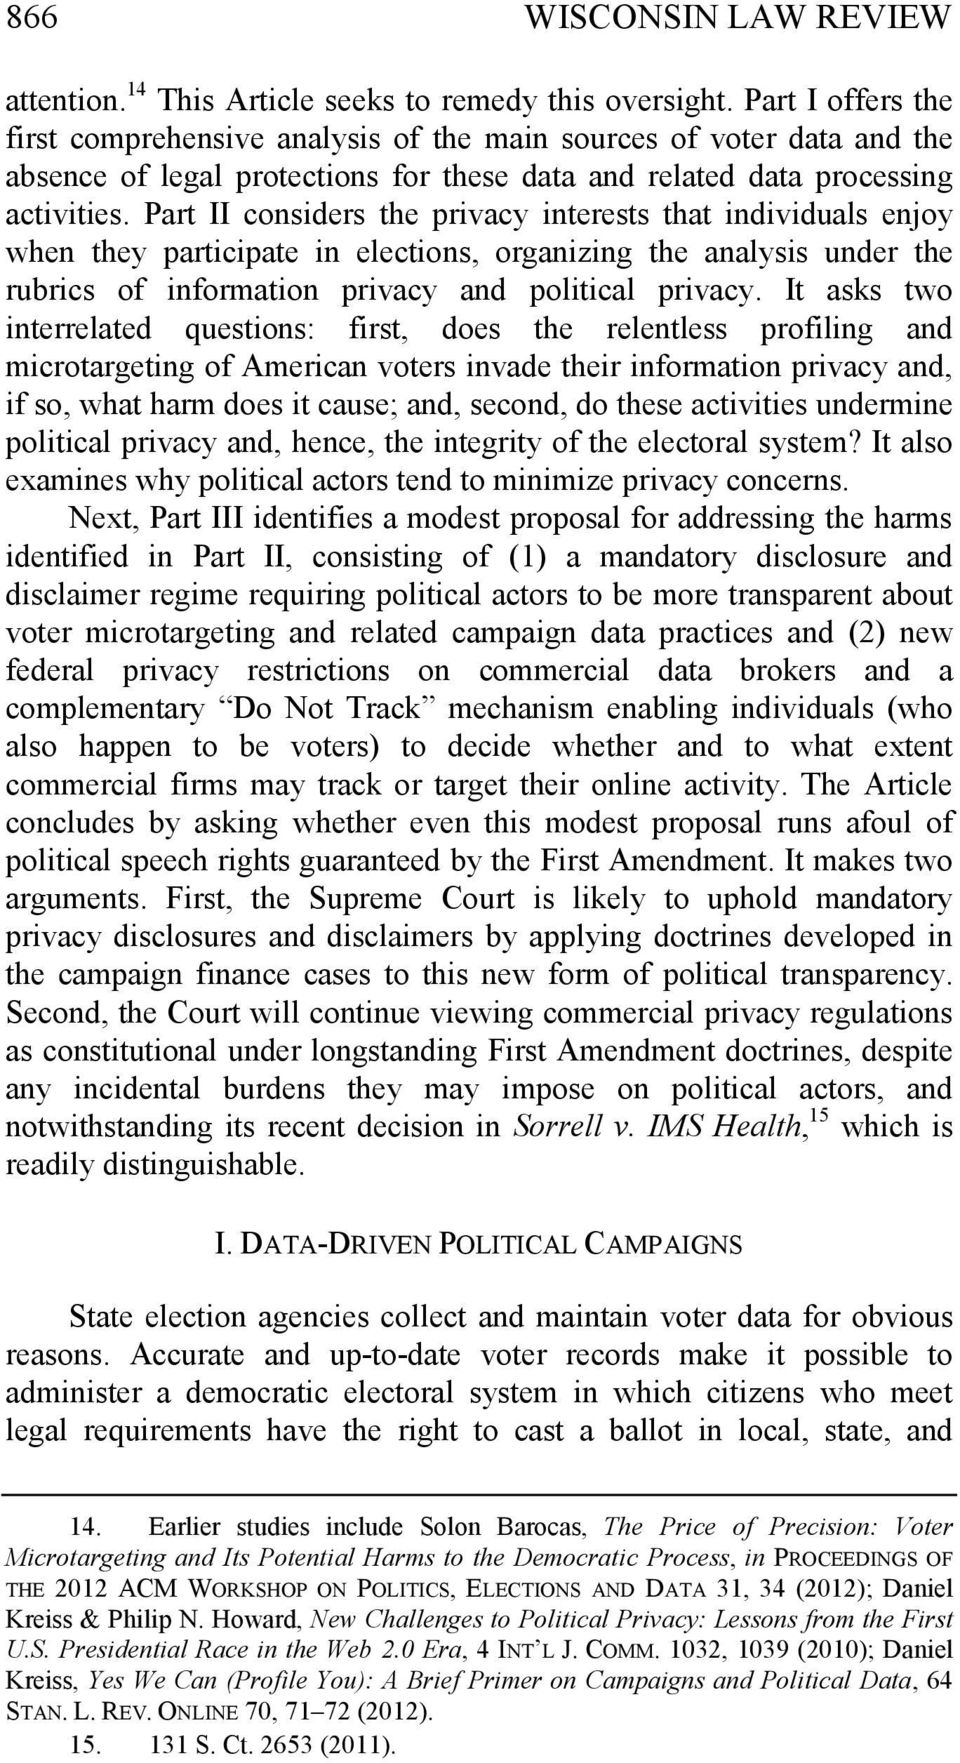 Part II considers the privacy interests that individuals enjoy when they participate in elections, organizing the analysis under the rubrics of information privacy and political privacy.